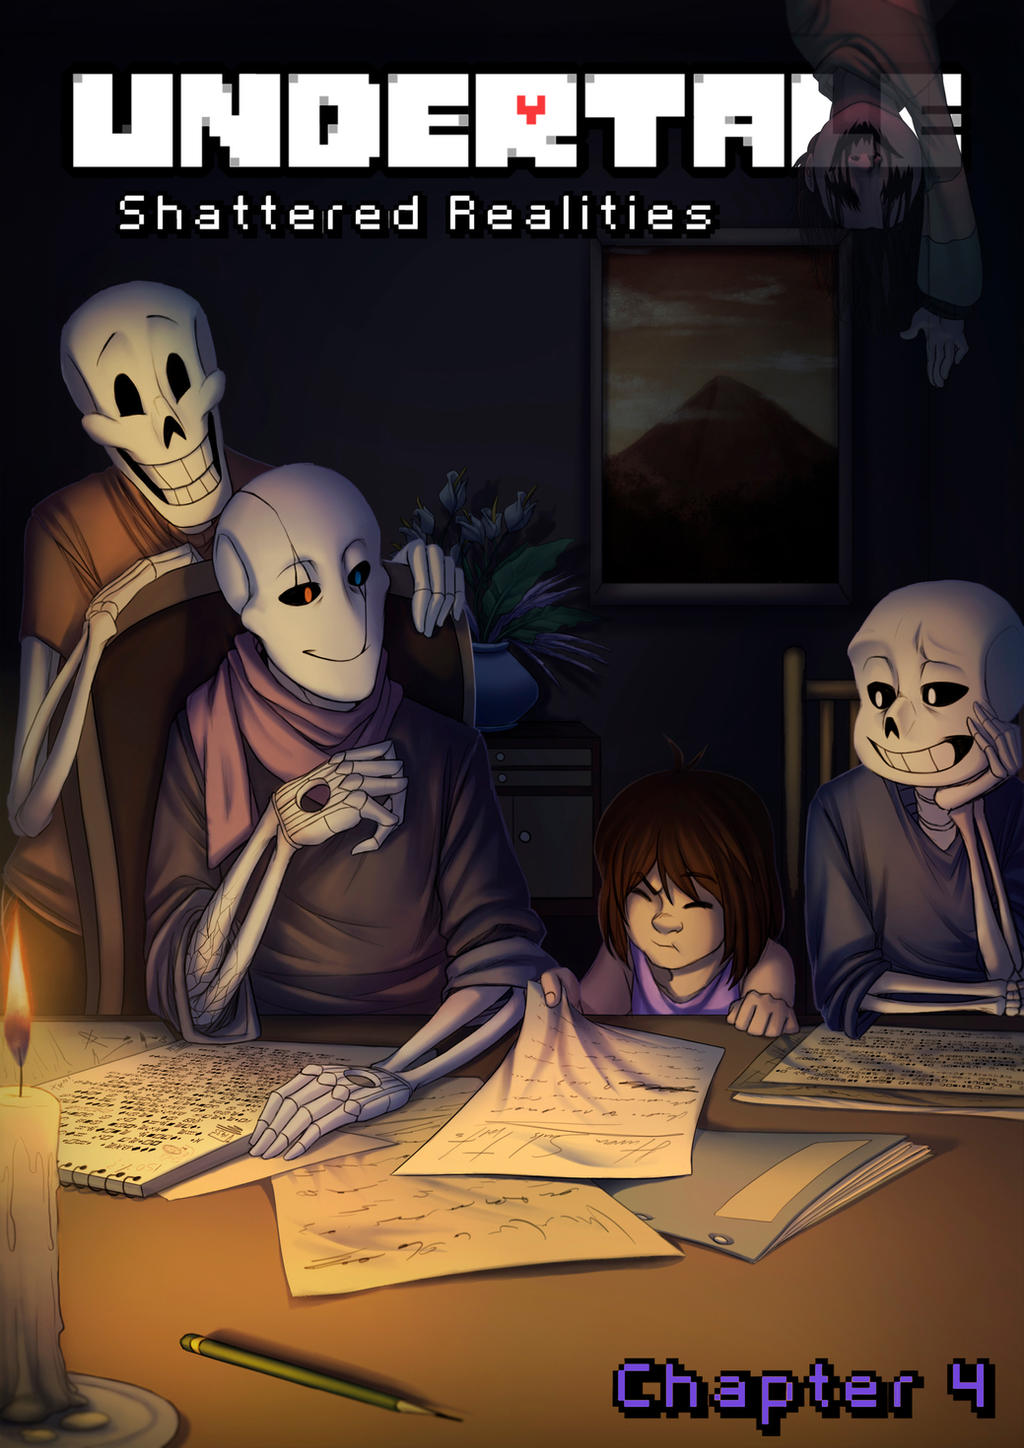 Shattered Realities - Chapter 4 - Cover by Ink-Mug